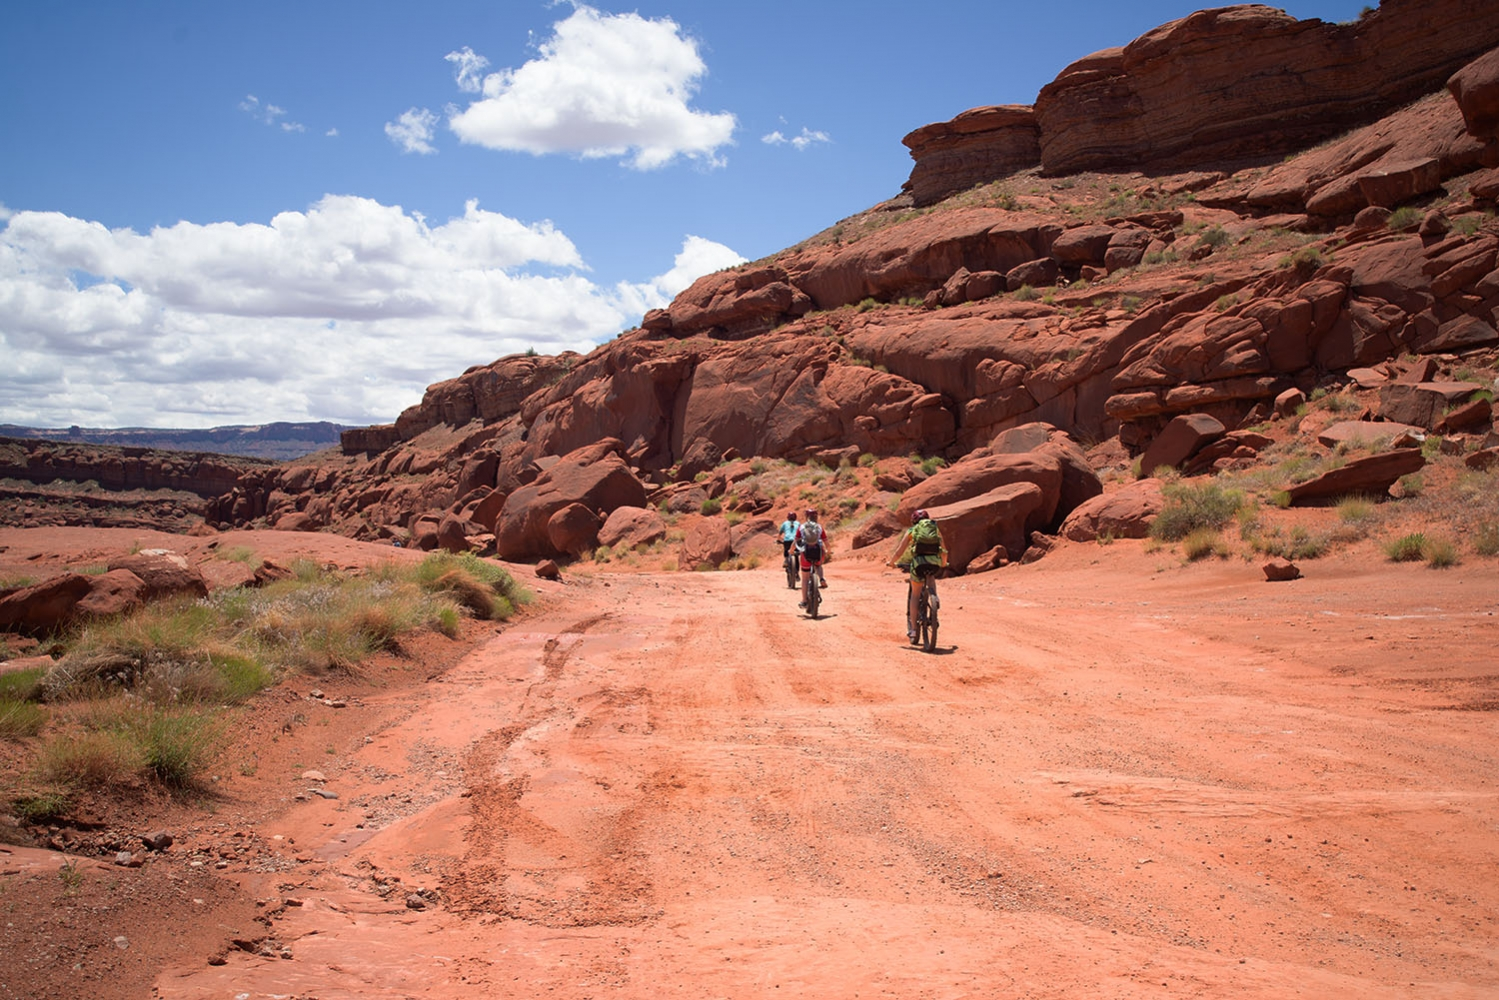 Canyonlands-National-Park-Full-Day-Guided-Mtb-Tour-Balanced-Rock-3